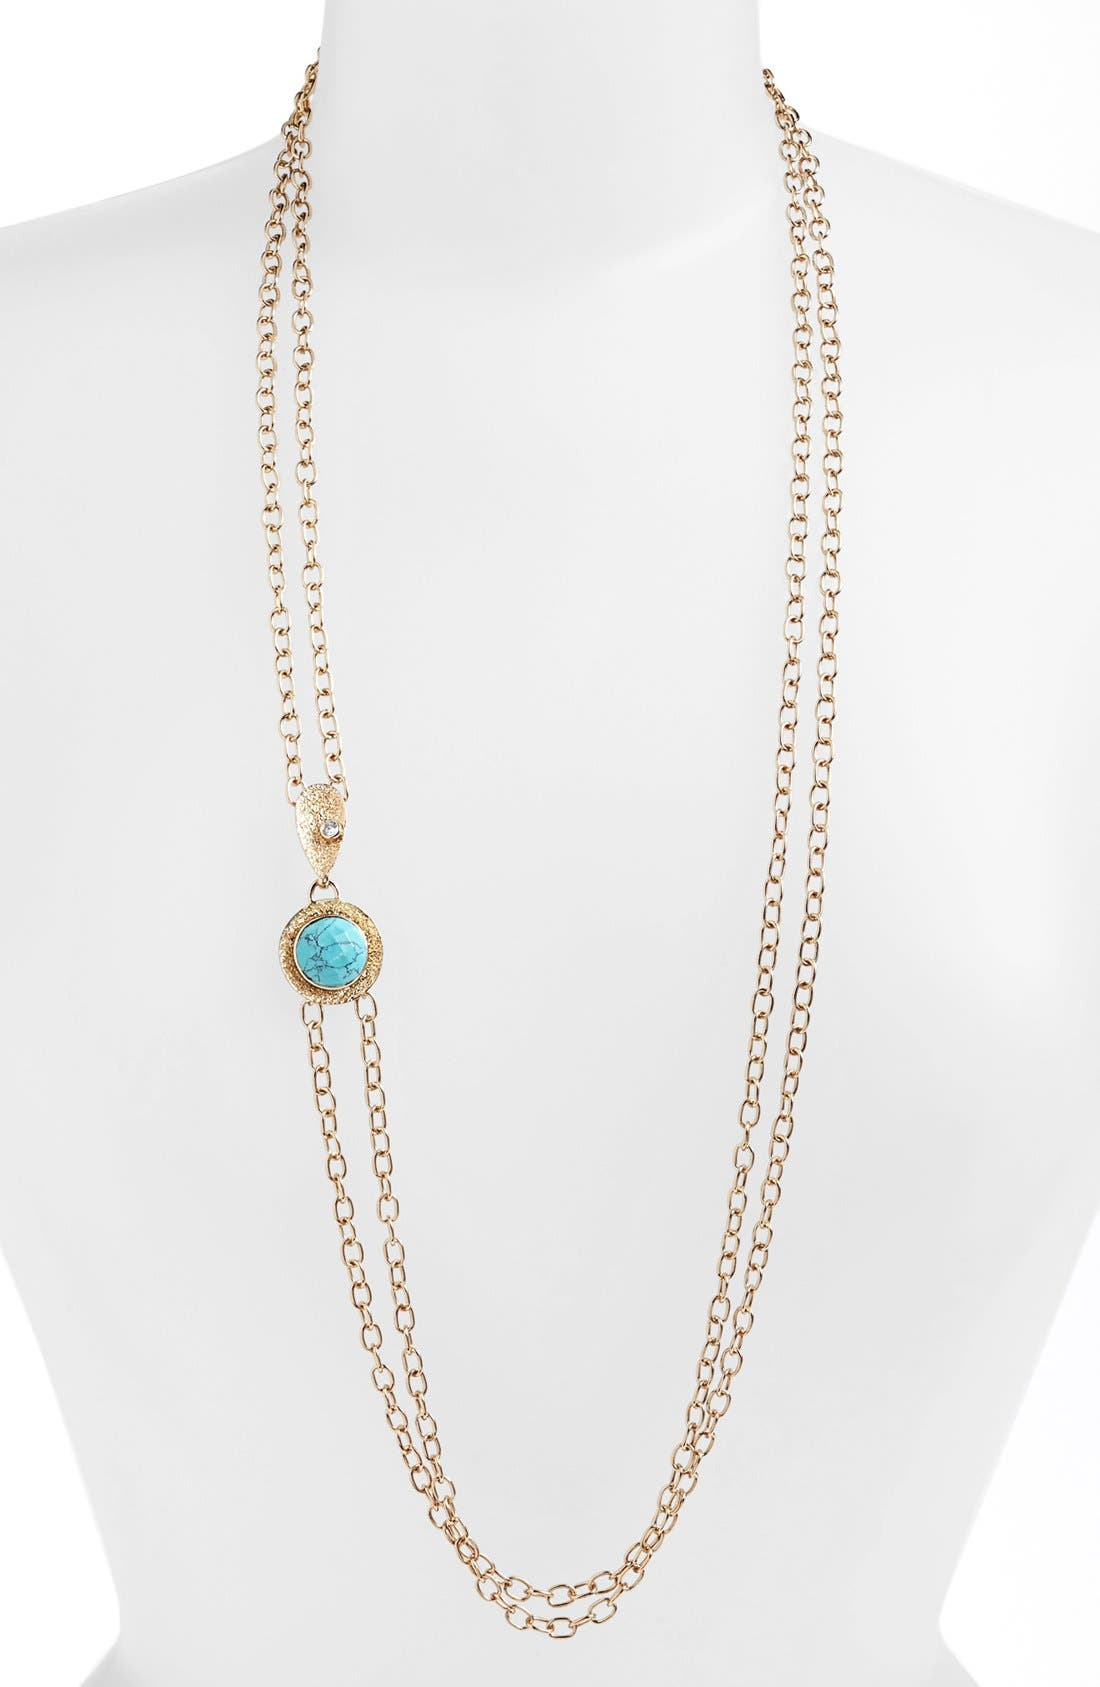 Alternate Image 1 Selected - Melinda Maria 'Sandra' Long Multistrand Necklace (Nordstrom Exclusive)